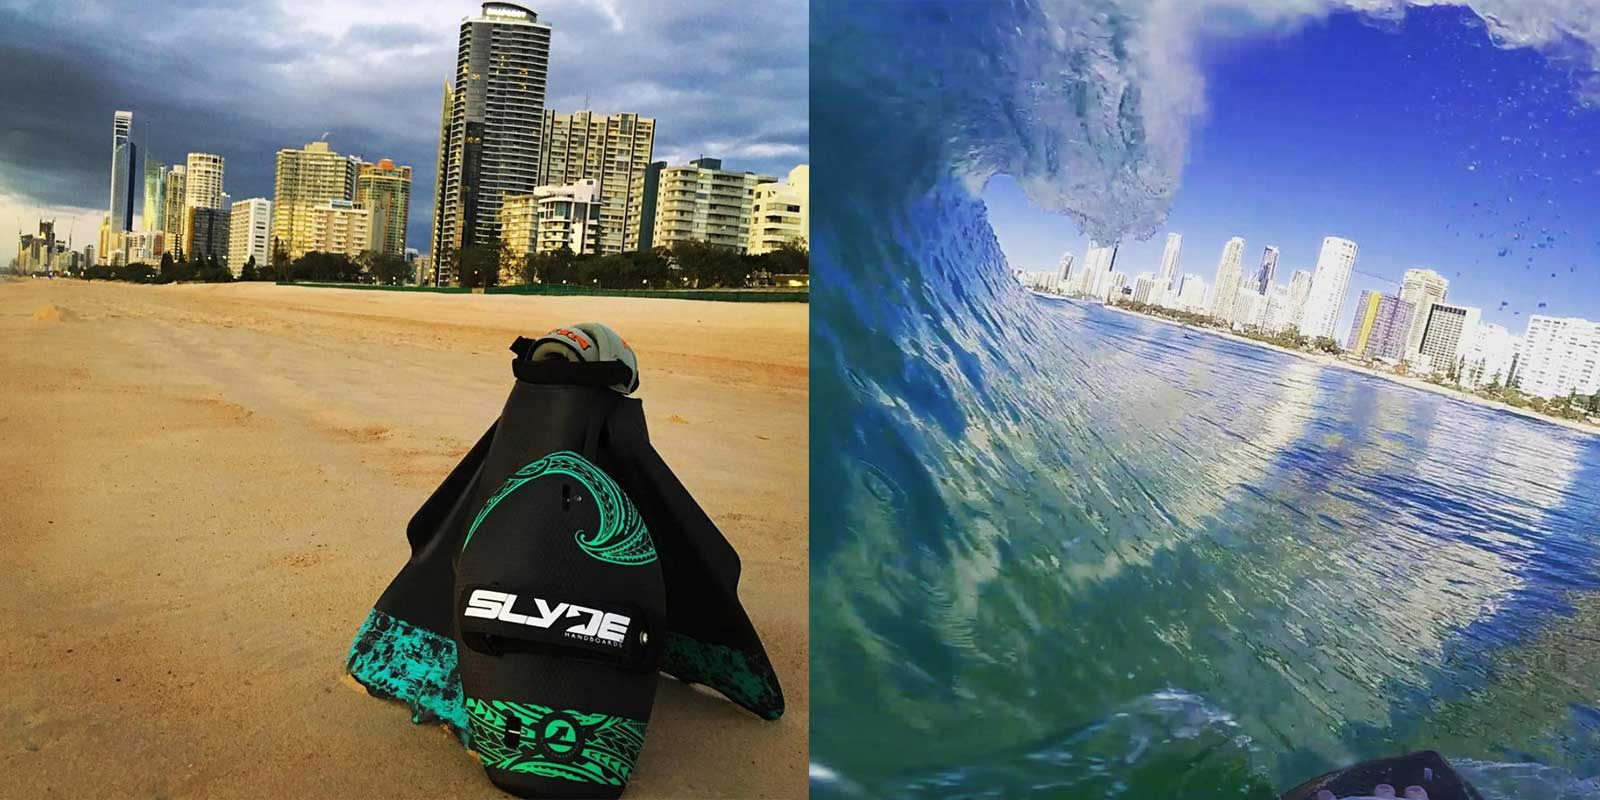 Slyde Handboards Expands to Australia Bodysurf The Gold Coast